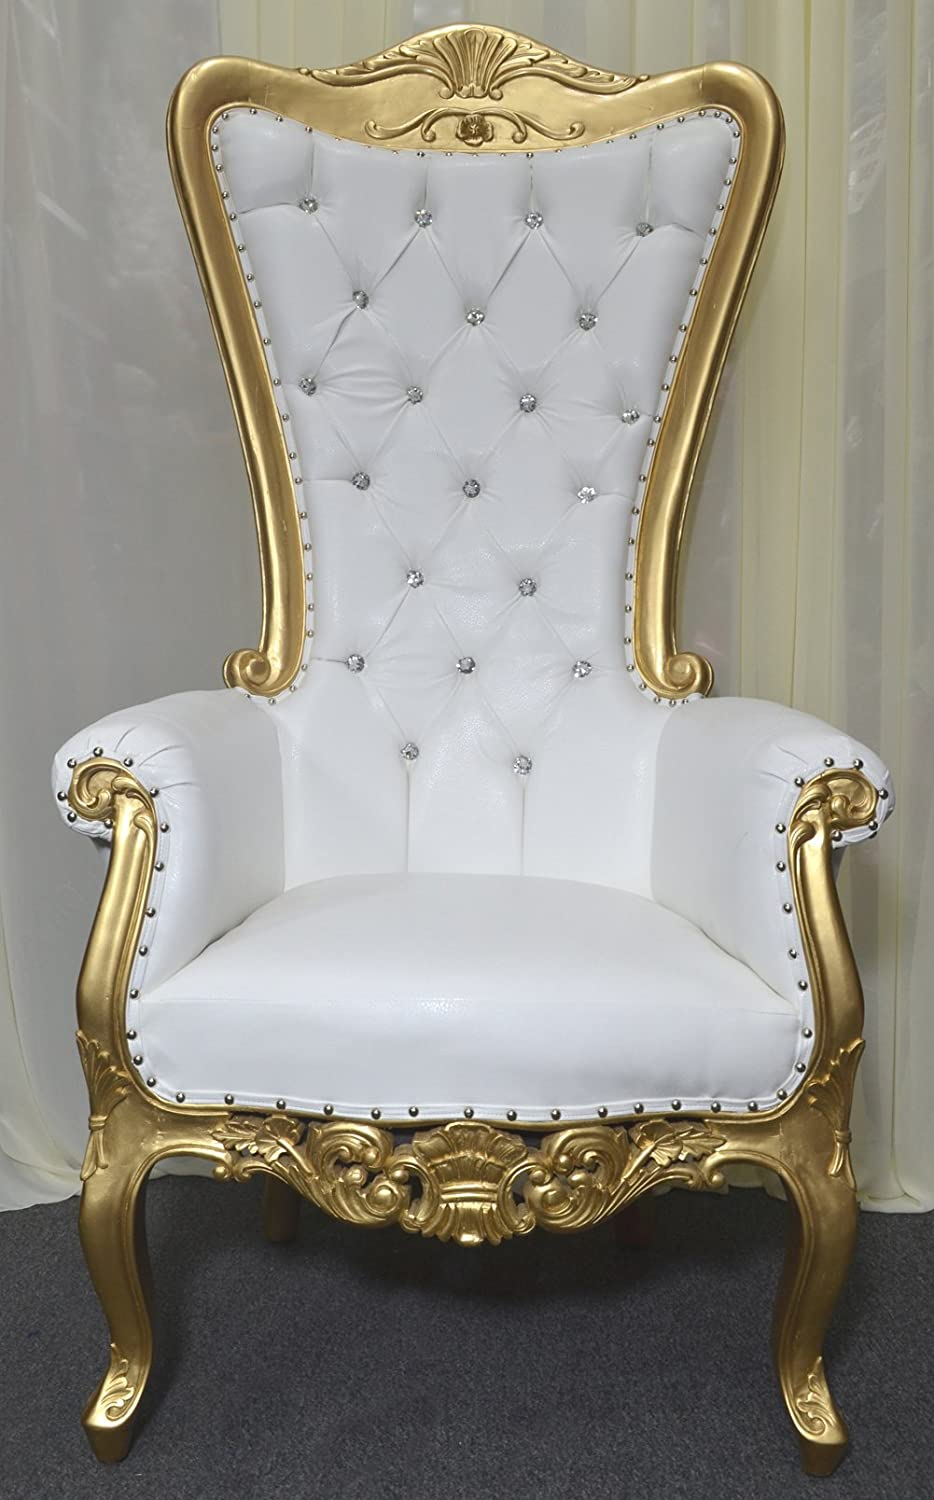 Amazon Com American Home Design Gold Baroque Hand Carved Throne Chair With White Vinyl Crystal Buttoning Kitchen Dining